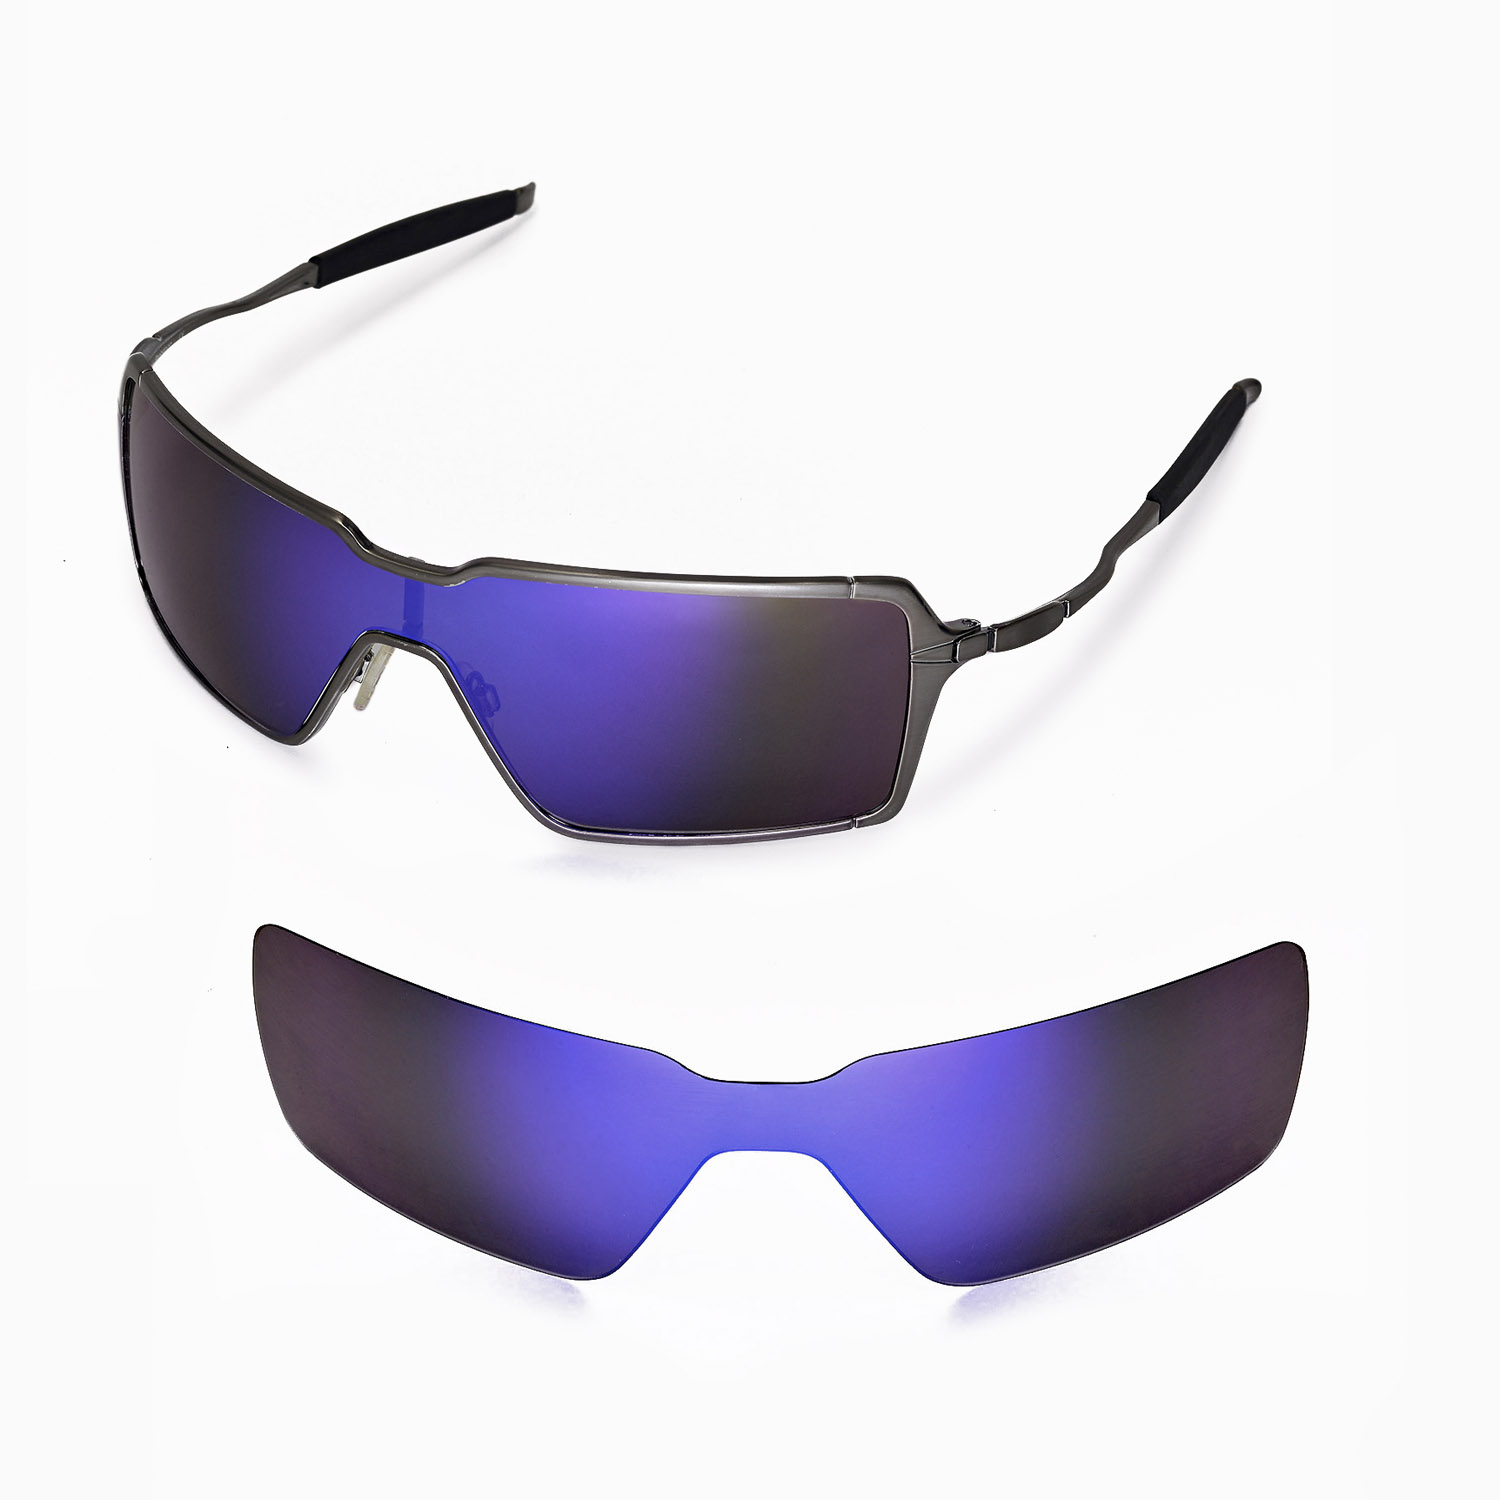 oakley 5 sunglasses  New WL Polarized Purple Replacement Lenses For Oakley Probation ...